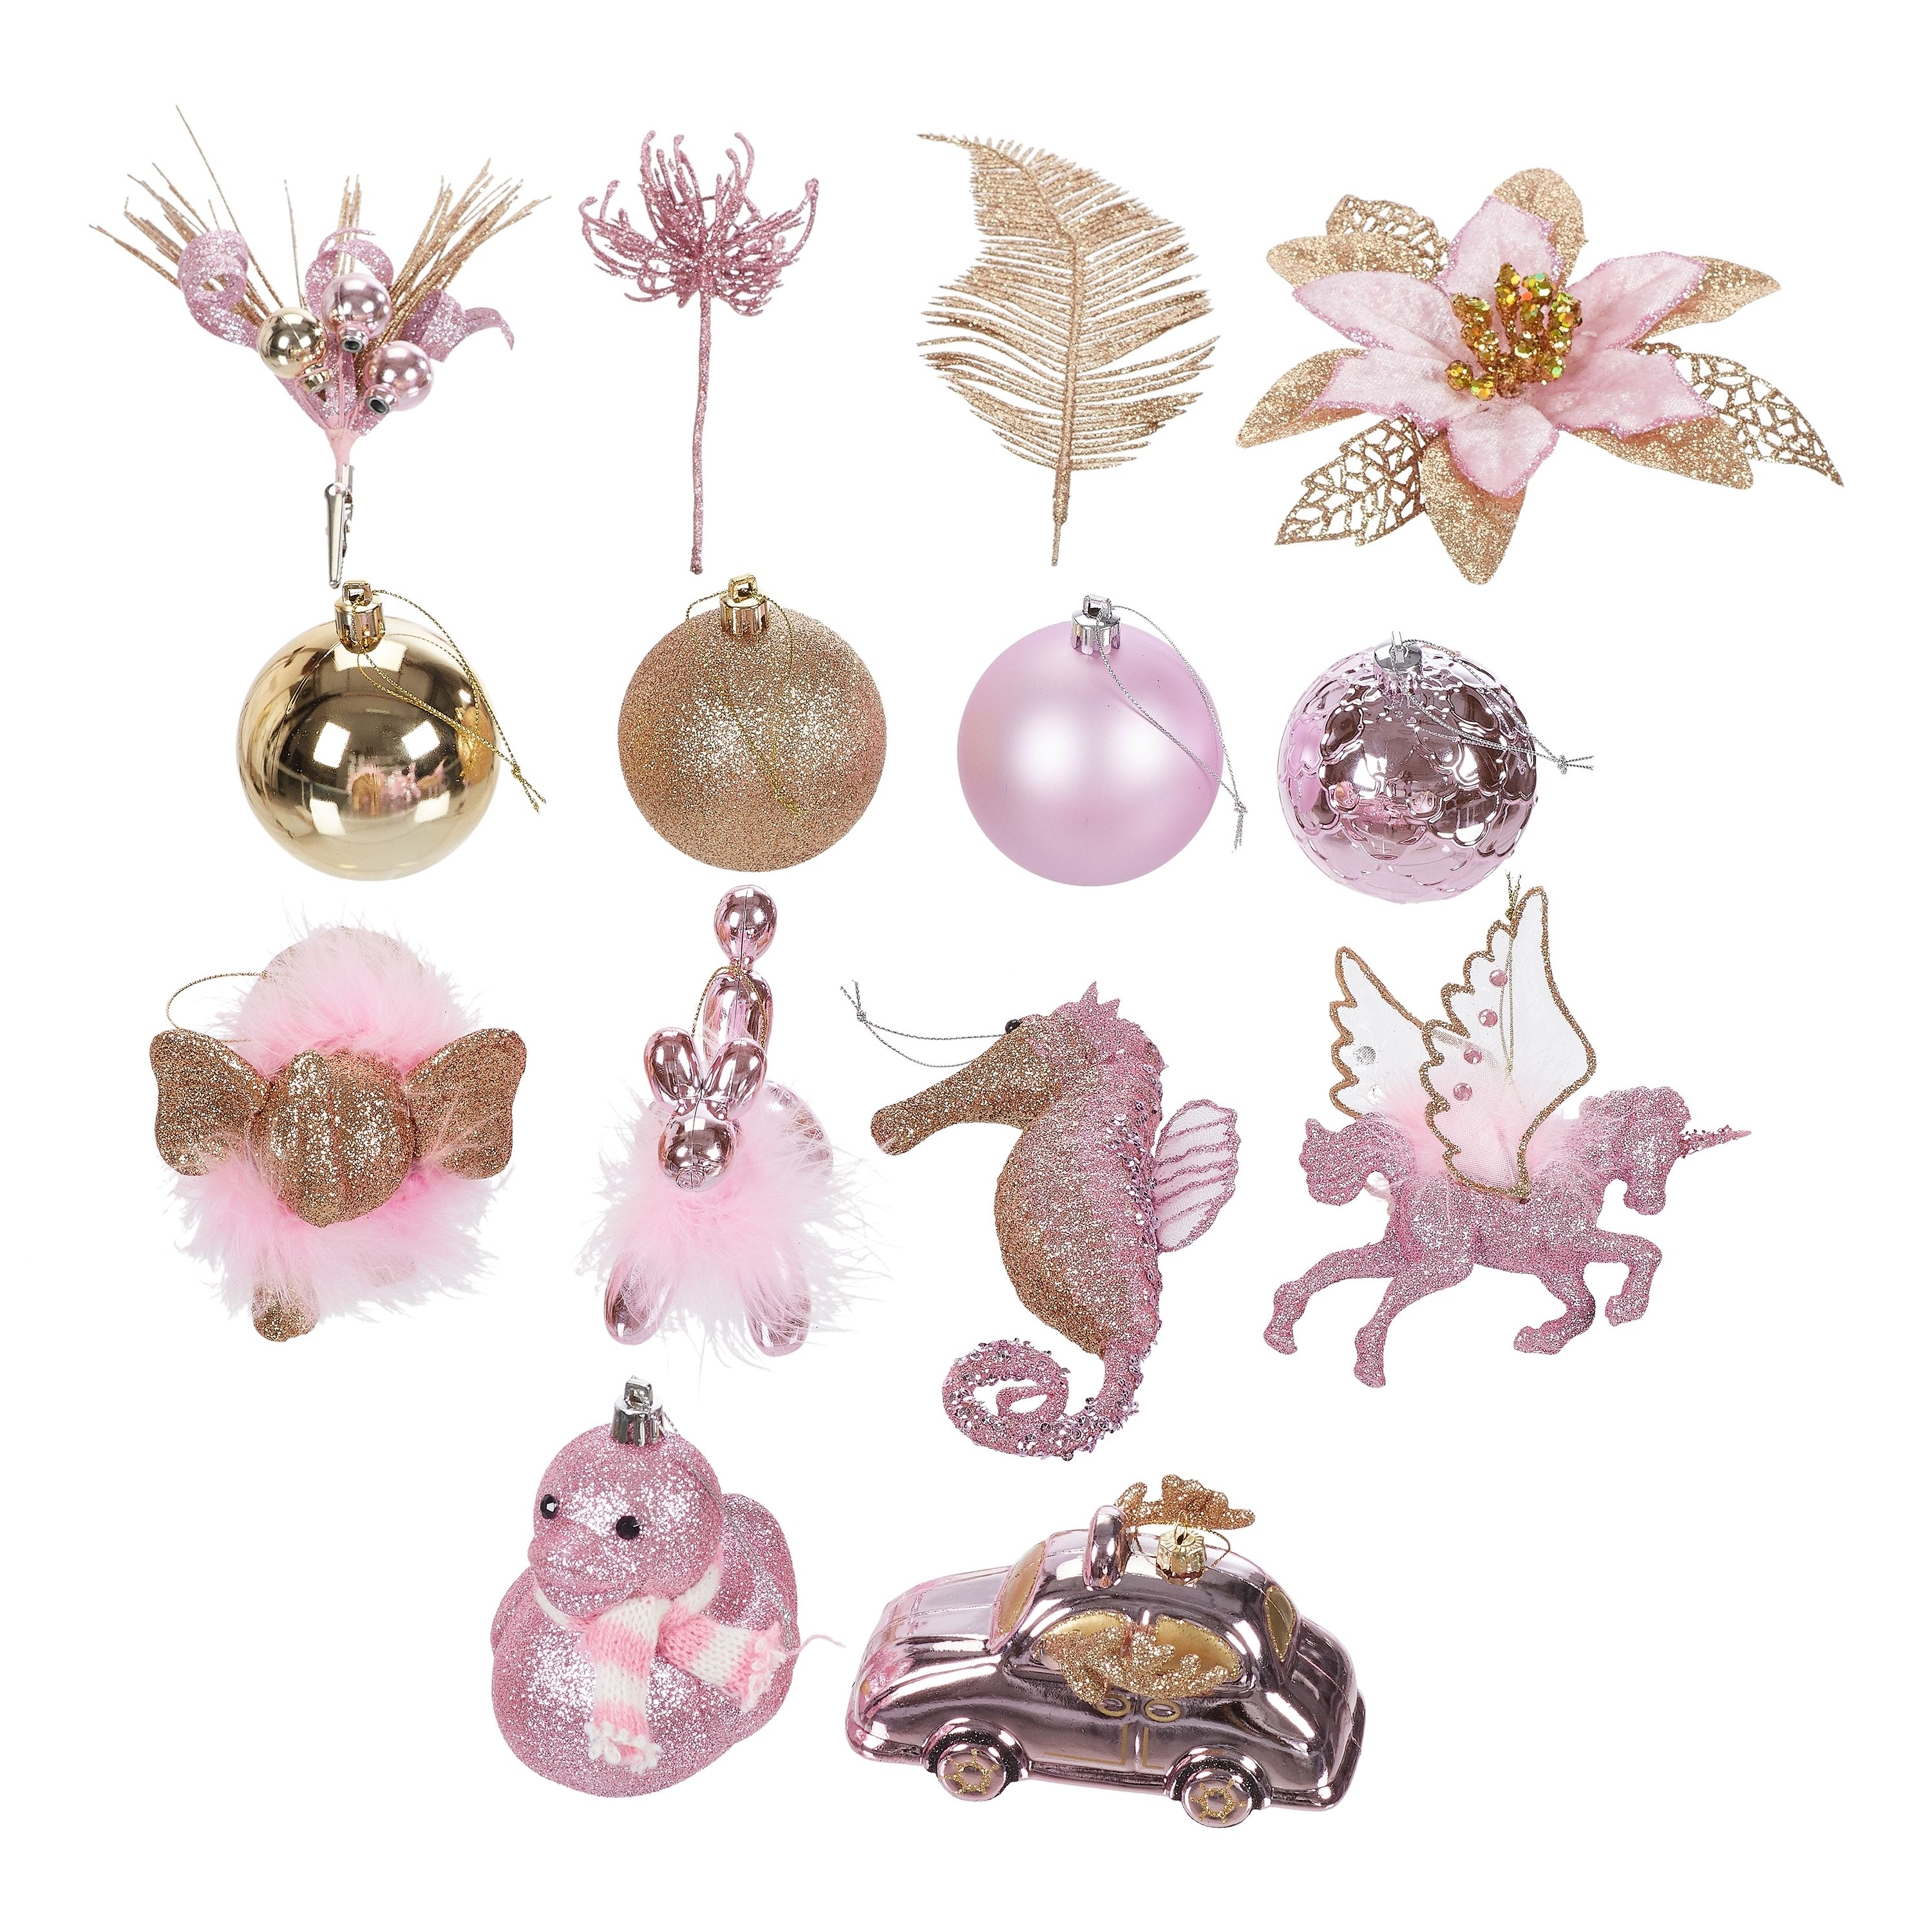 Holiday Time Pink And Gold Variety Christmas Tree Ornaments 28 Count Limited Edition Walmart Com Walmart Com